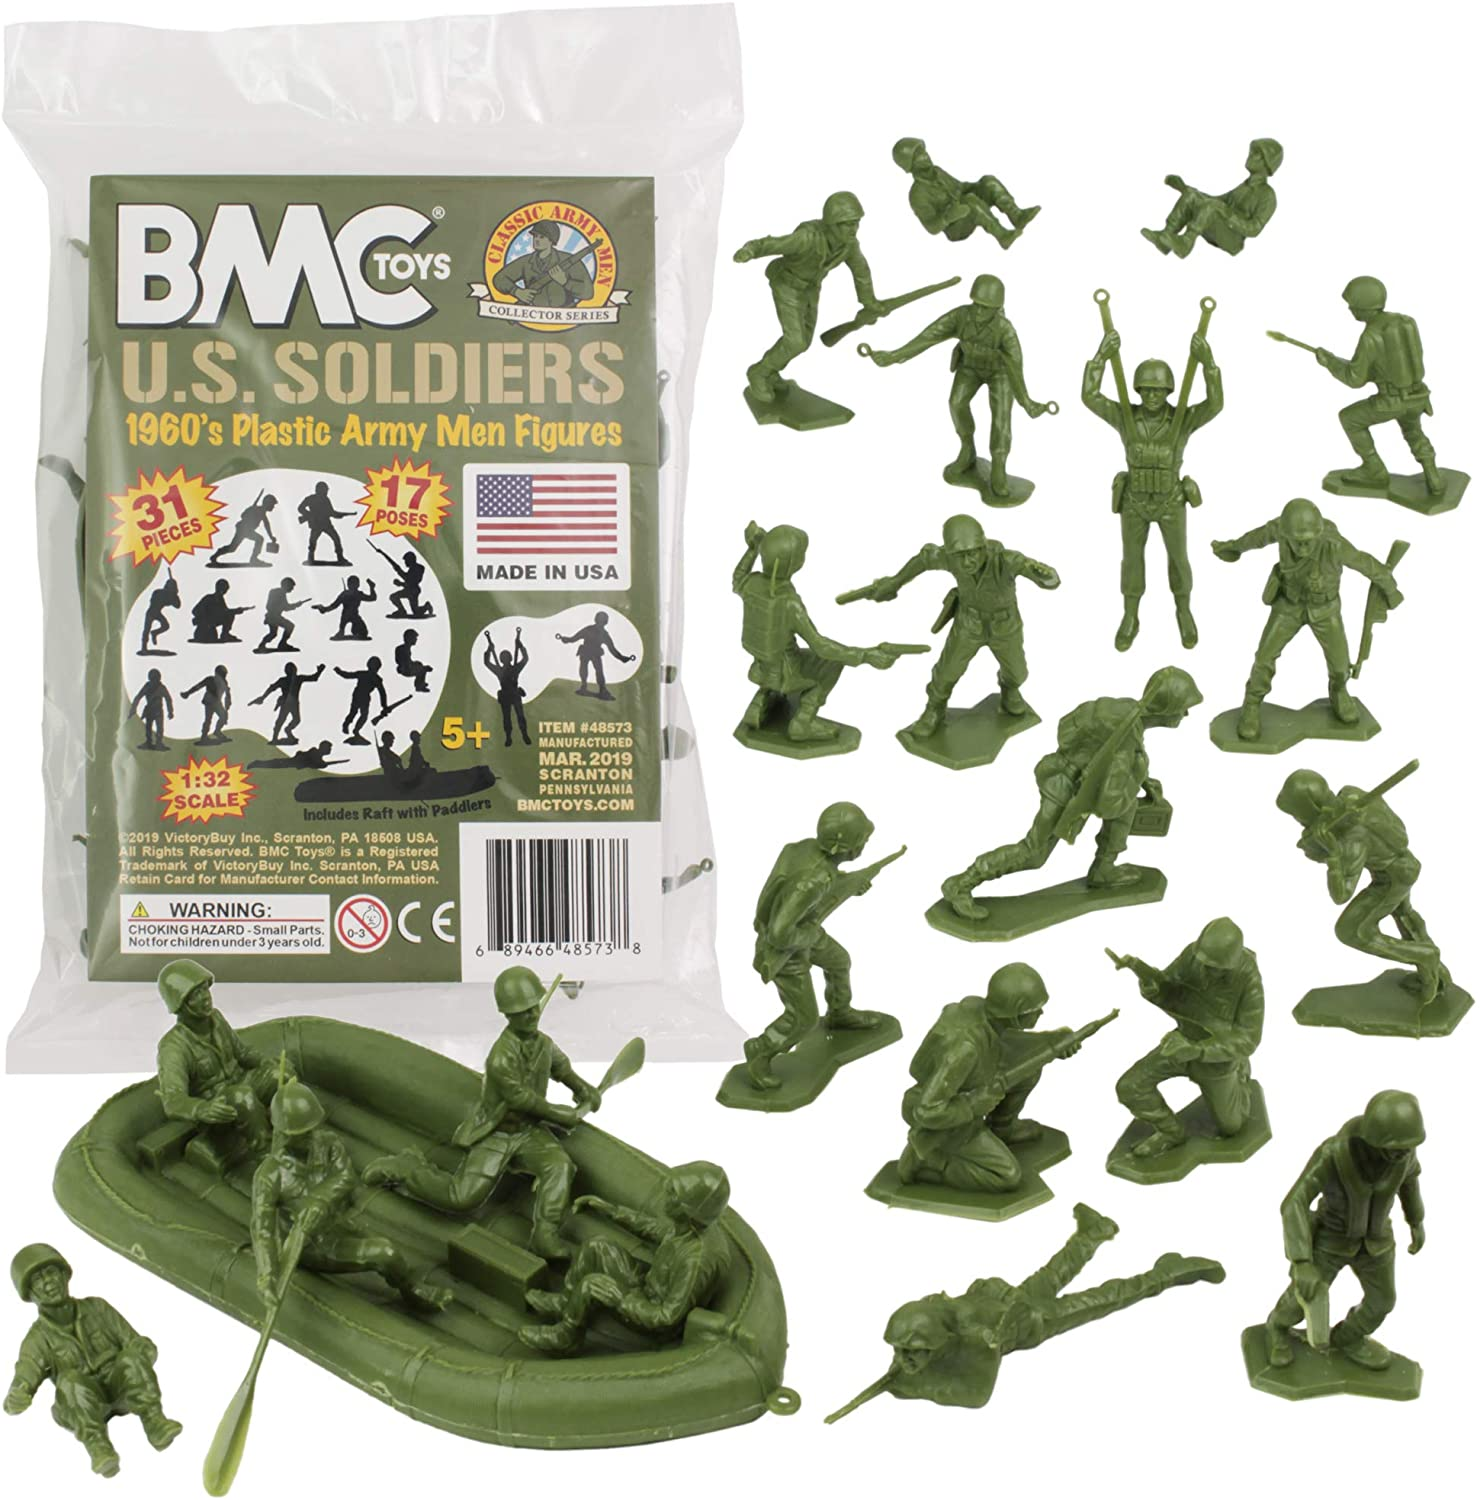 270 pcs Military Playset Plastic Toy Soldier Army Men 4cm Figures /&  US USA